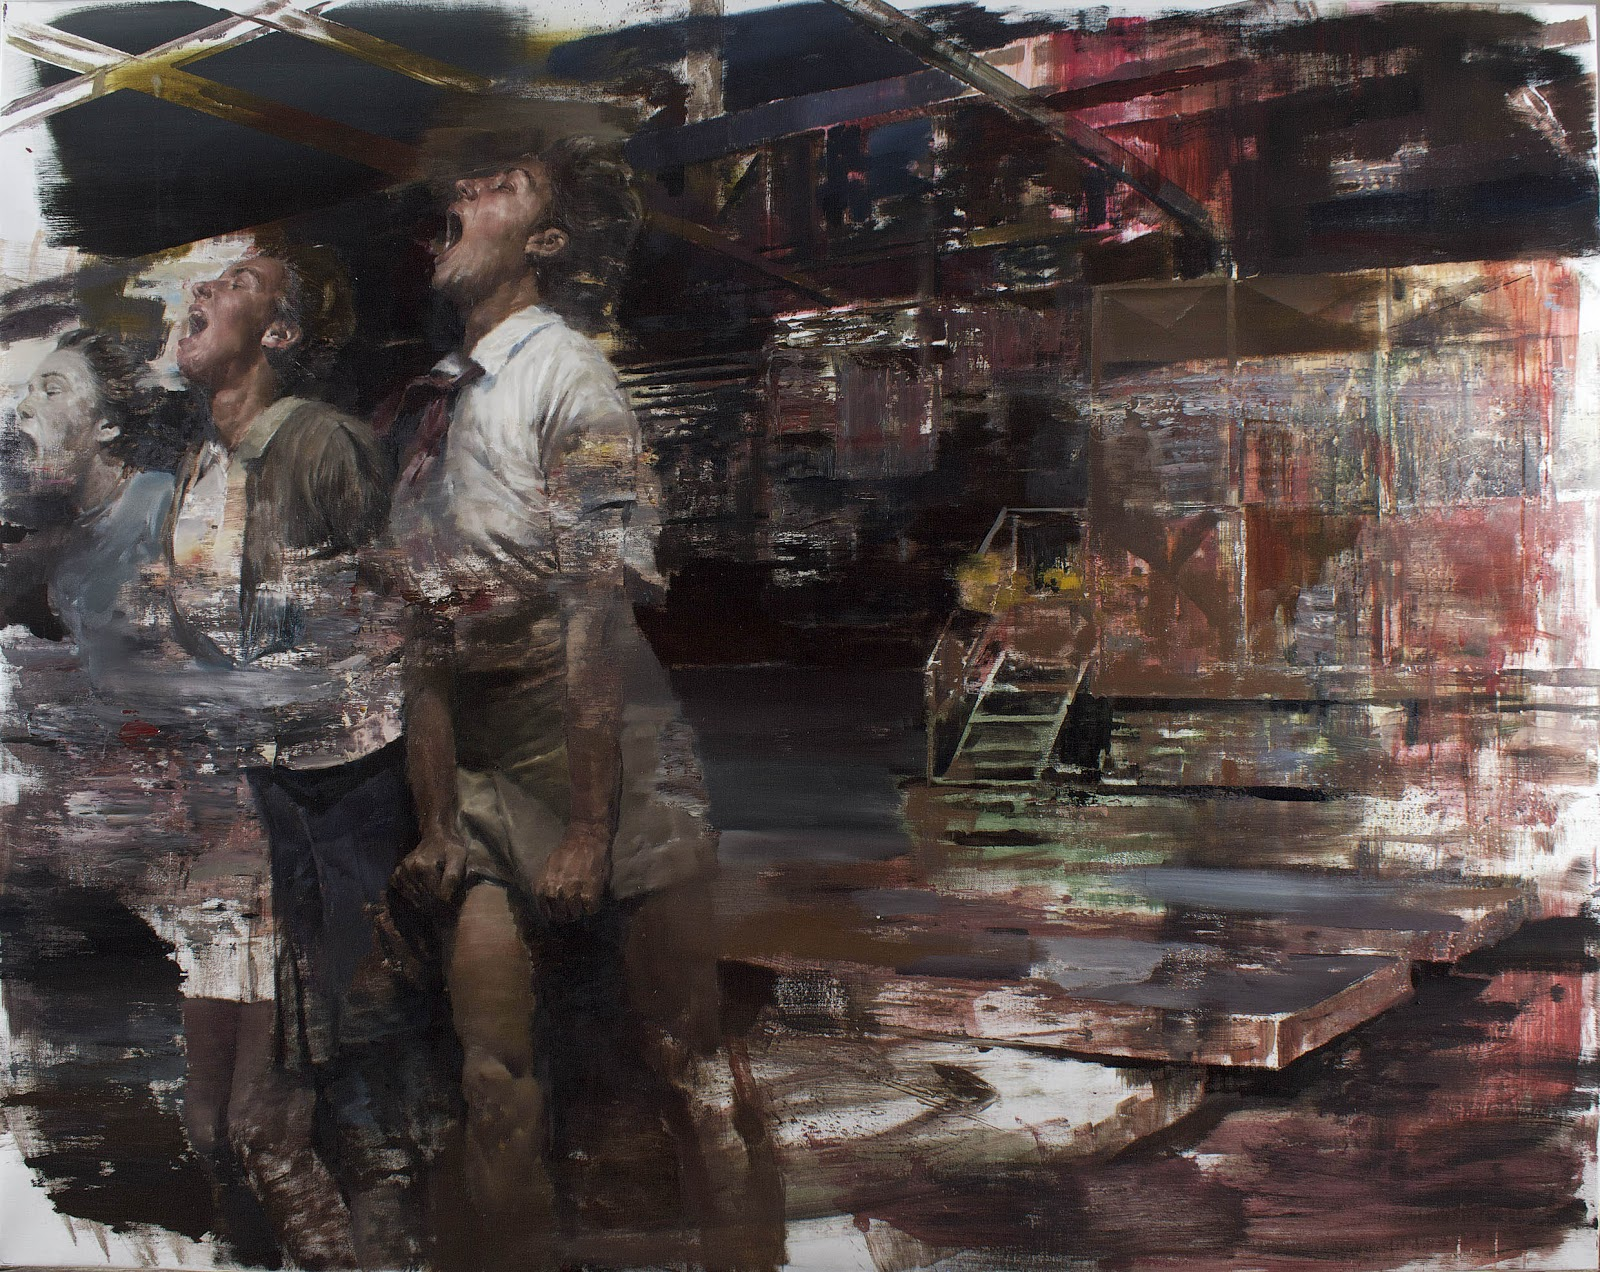 "Dan Voinea ""A Momentary Rise of Reason"" @ Beers.Lambert Contemporary, London: Performance II.160X200cm.jpg"